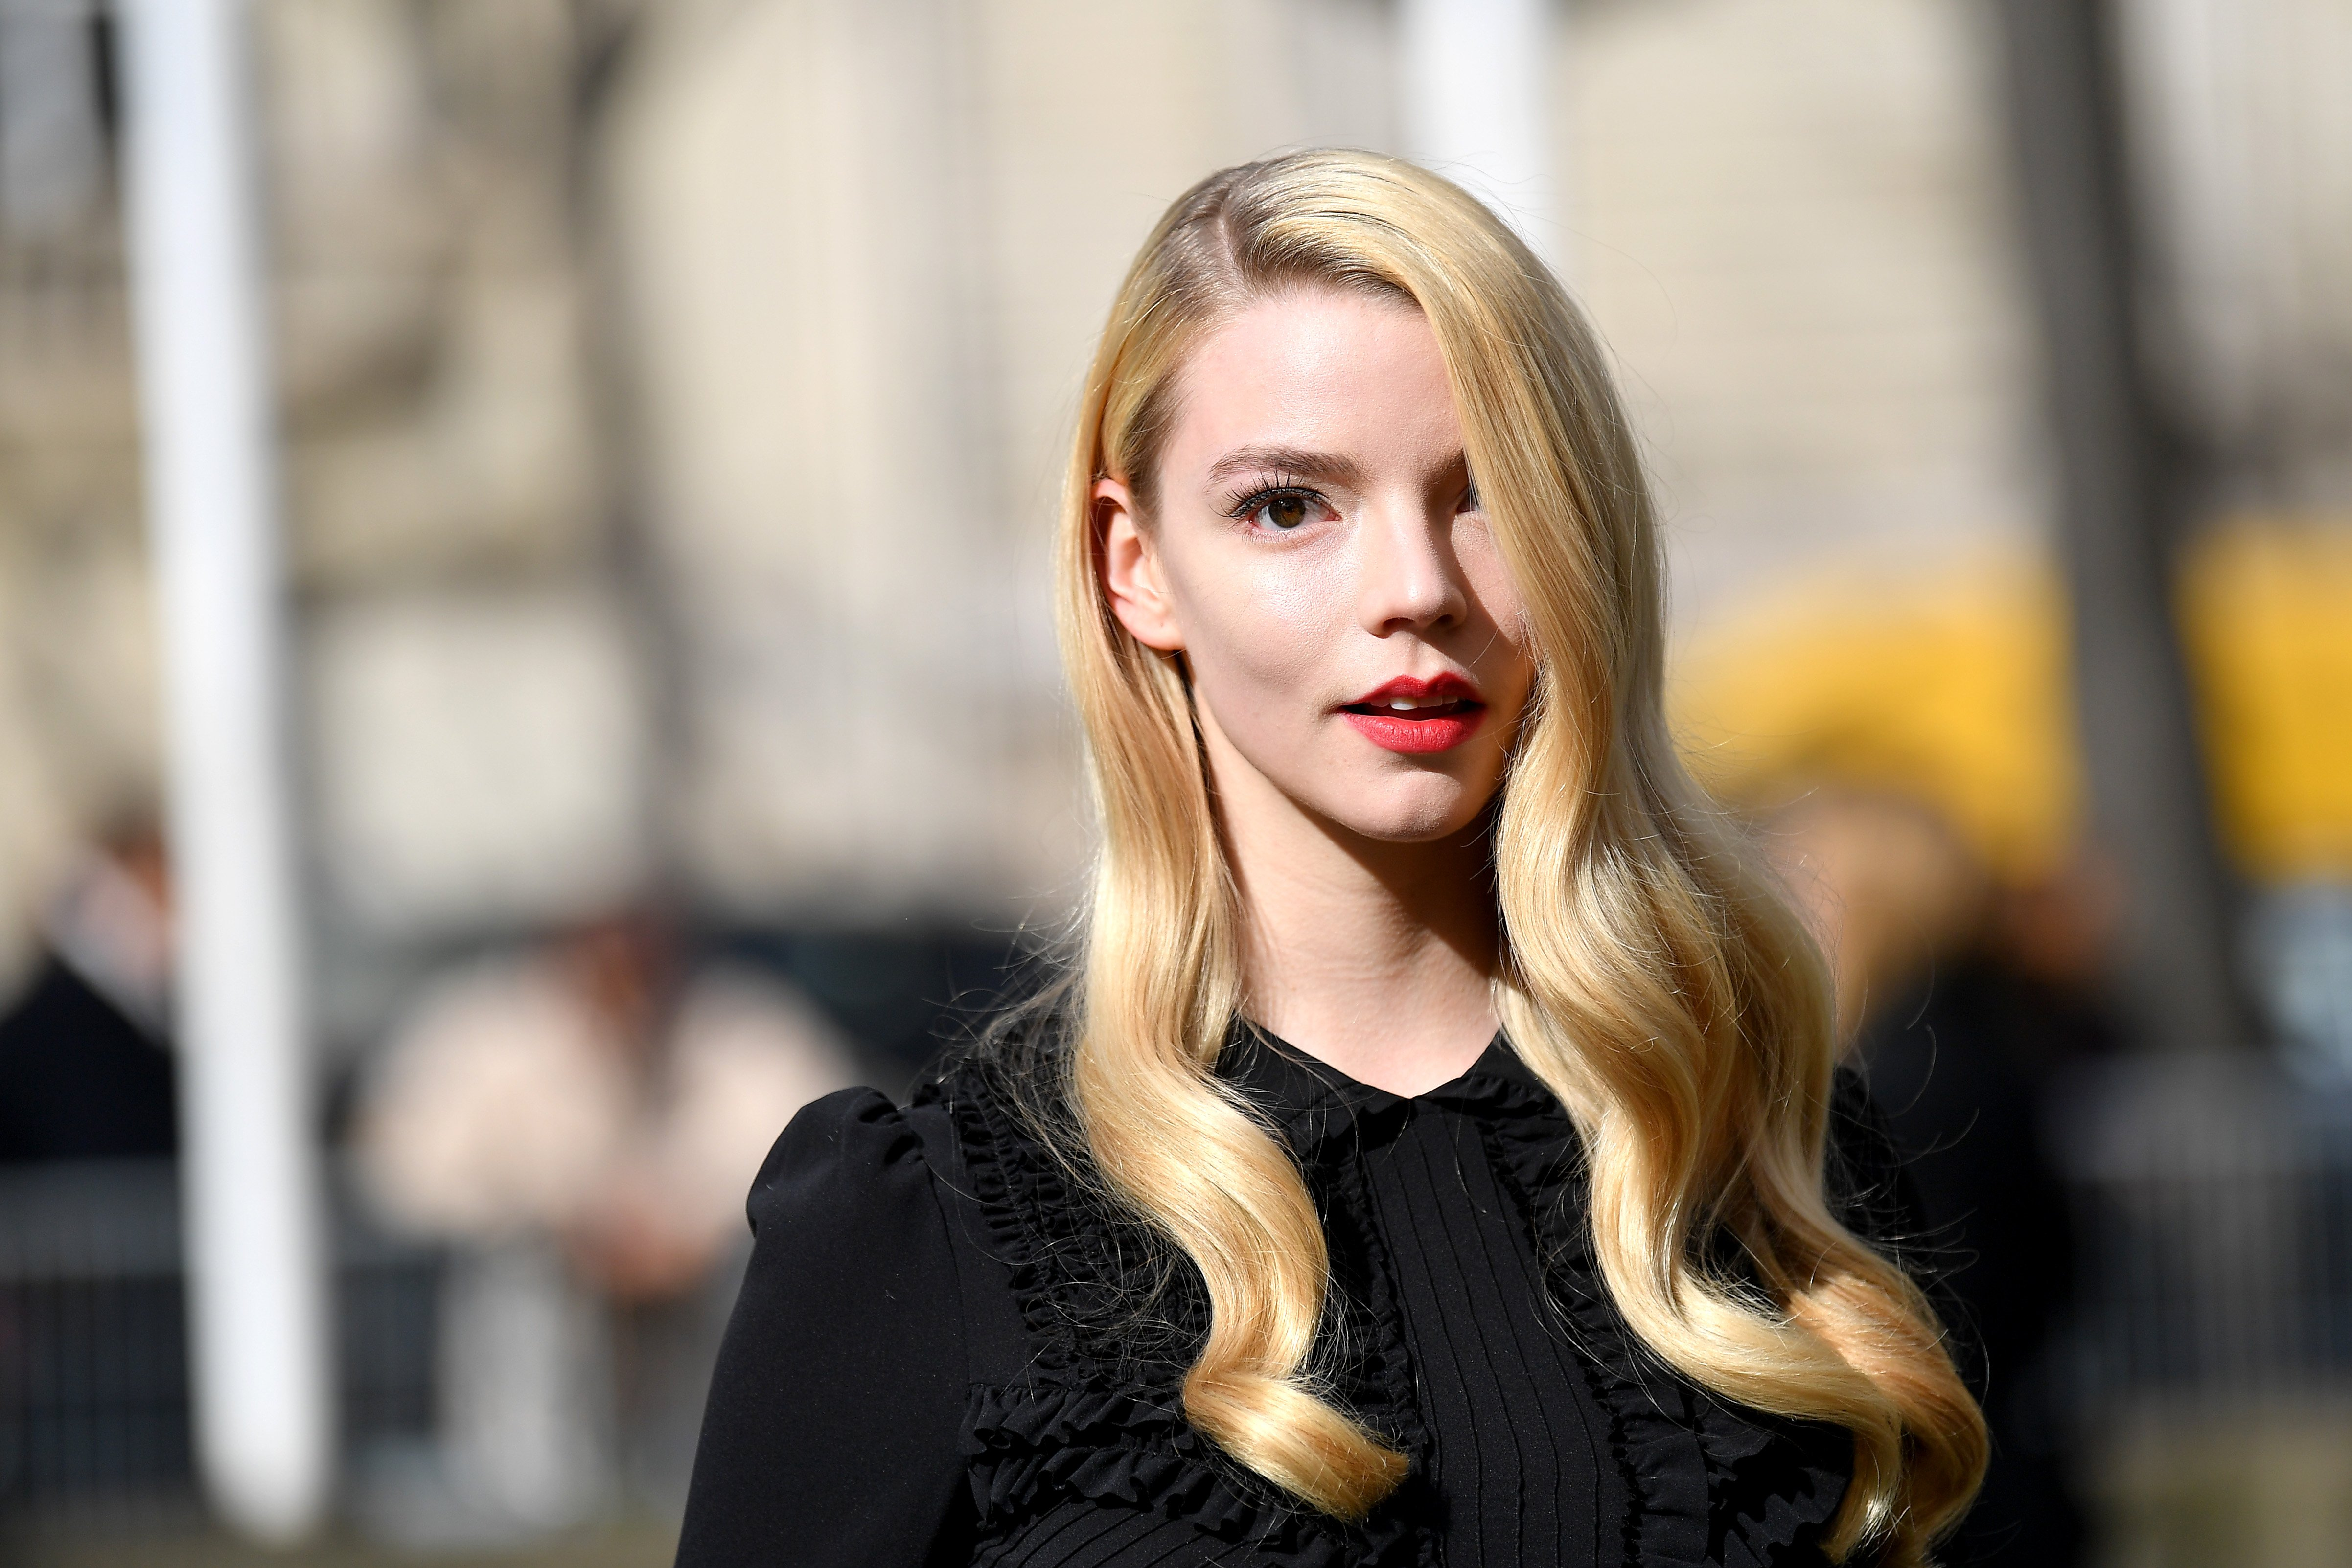 Anya Taylor-Joy attends the Miu Miu show as part of the Paris Fashion Week Womenswear Fall/Winter 2020/2021 on March 3, 2020 in Paris, France. | Photo: Getty Images